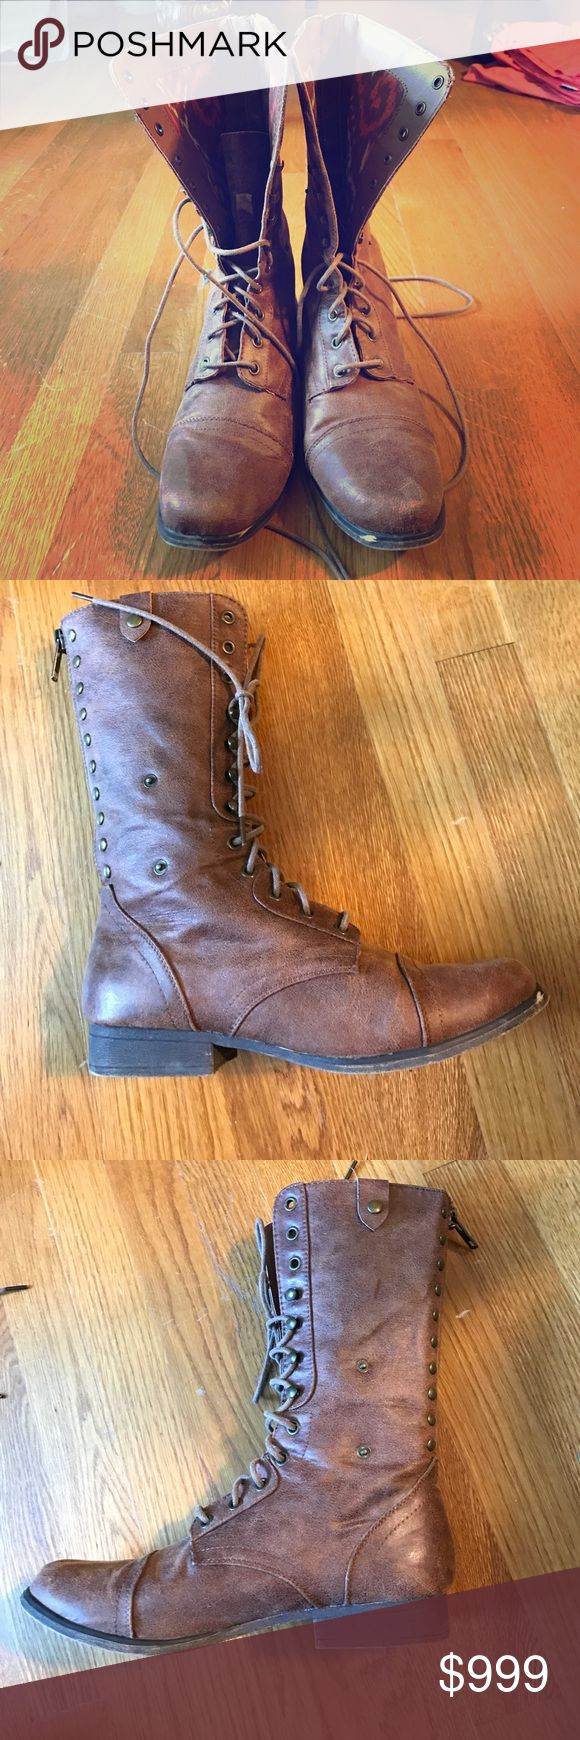 Madden Girl Boots -- Offers for pricing! For Sale: Madden Girl Boots. Brown, size 8.5, but run a bit small (I'm an 8.5 and they were snug). Hardly worn, good condition. Patterning on the inside. They lace up, but are also cute if tied around the leg. Zip up in the back. Price isn't as listed -- I'm looking for the best reasonable offer. Madden Girl Shoes Lace Up Boots